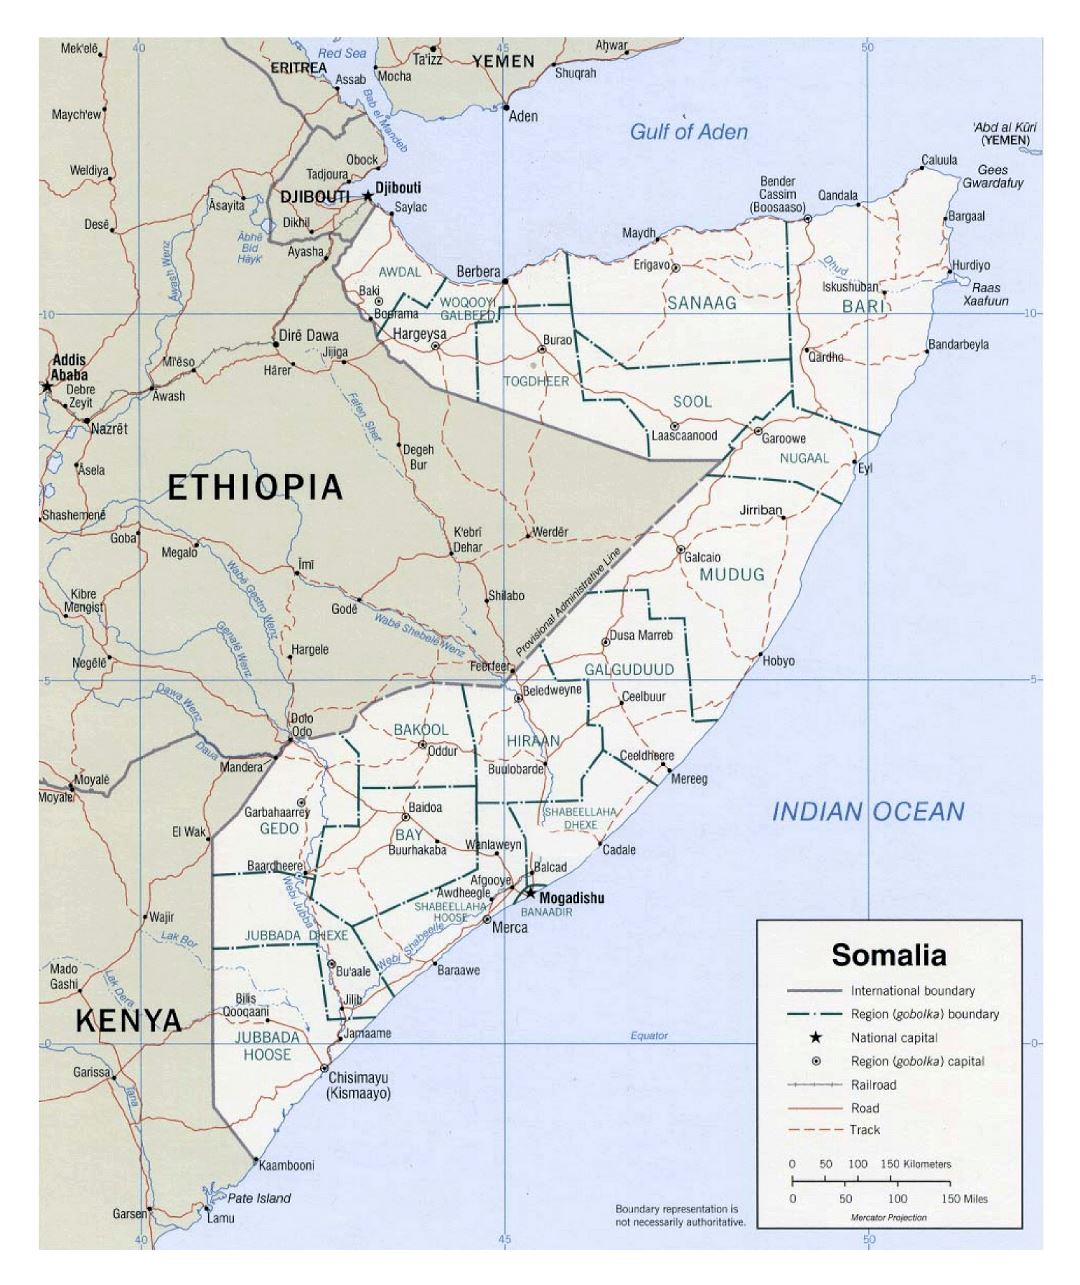 Large political and administrative map of Somalia with other marks